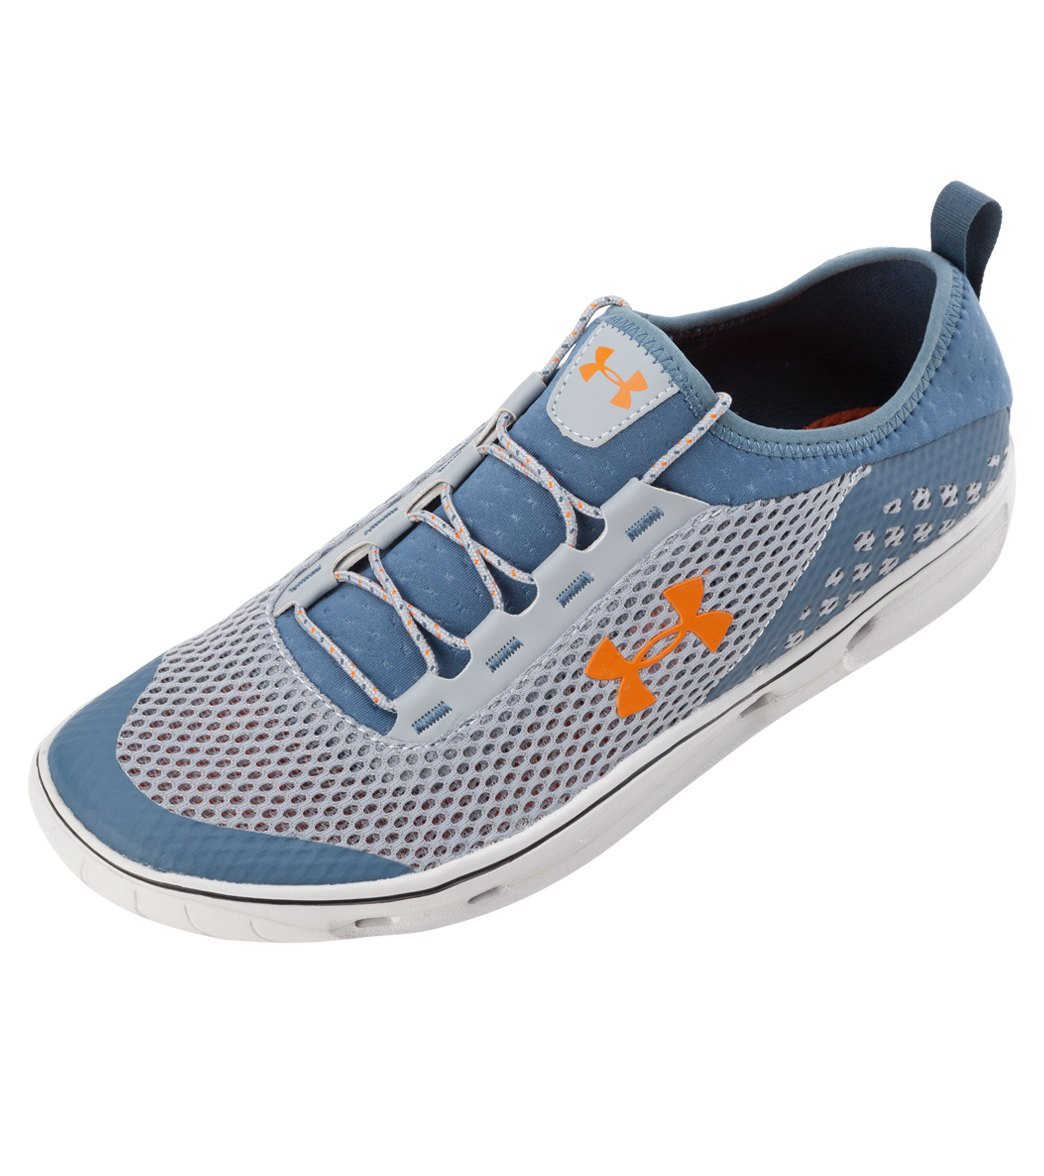 under armour shoes for men. under armour men\u0027s kilchis water shoe at swimoutlet.com - free shipping shoes for men a